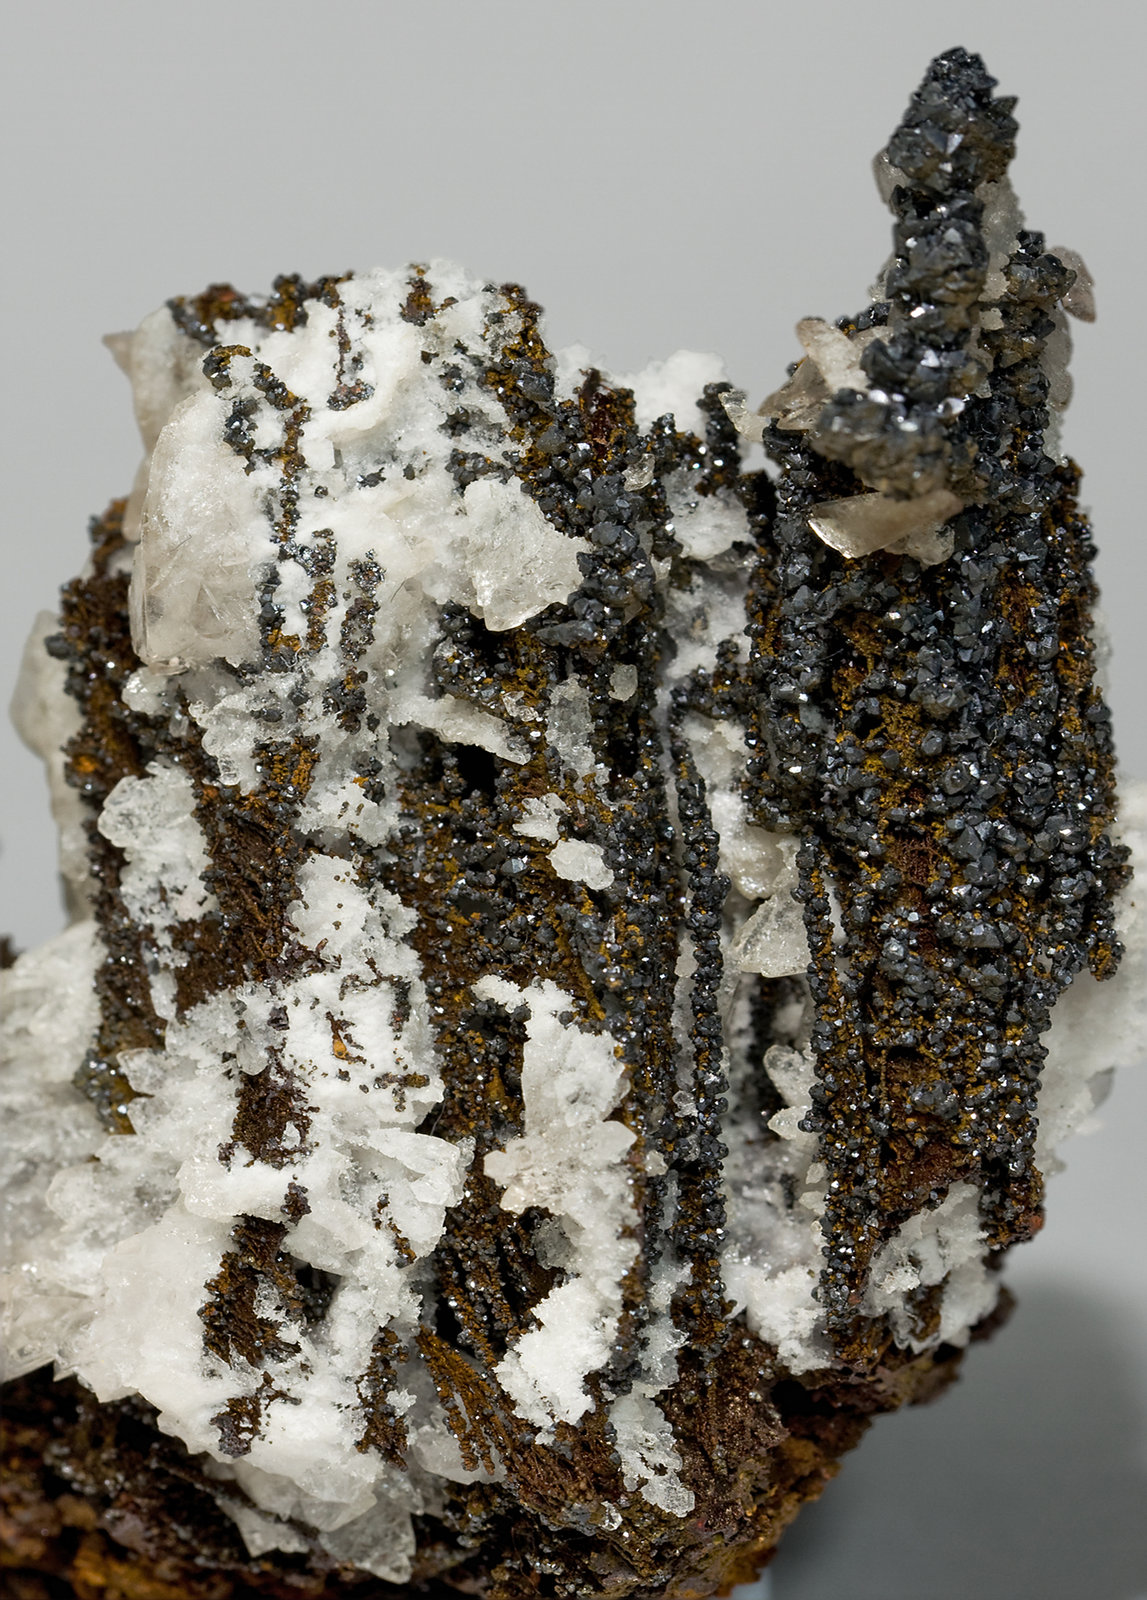 specimens/s_imagesT4/Descloizite-ND26T4d.jpg